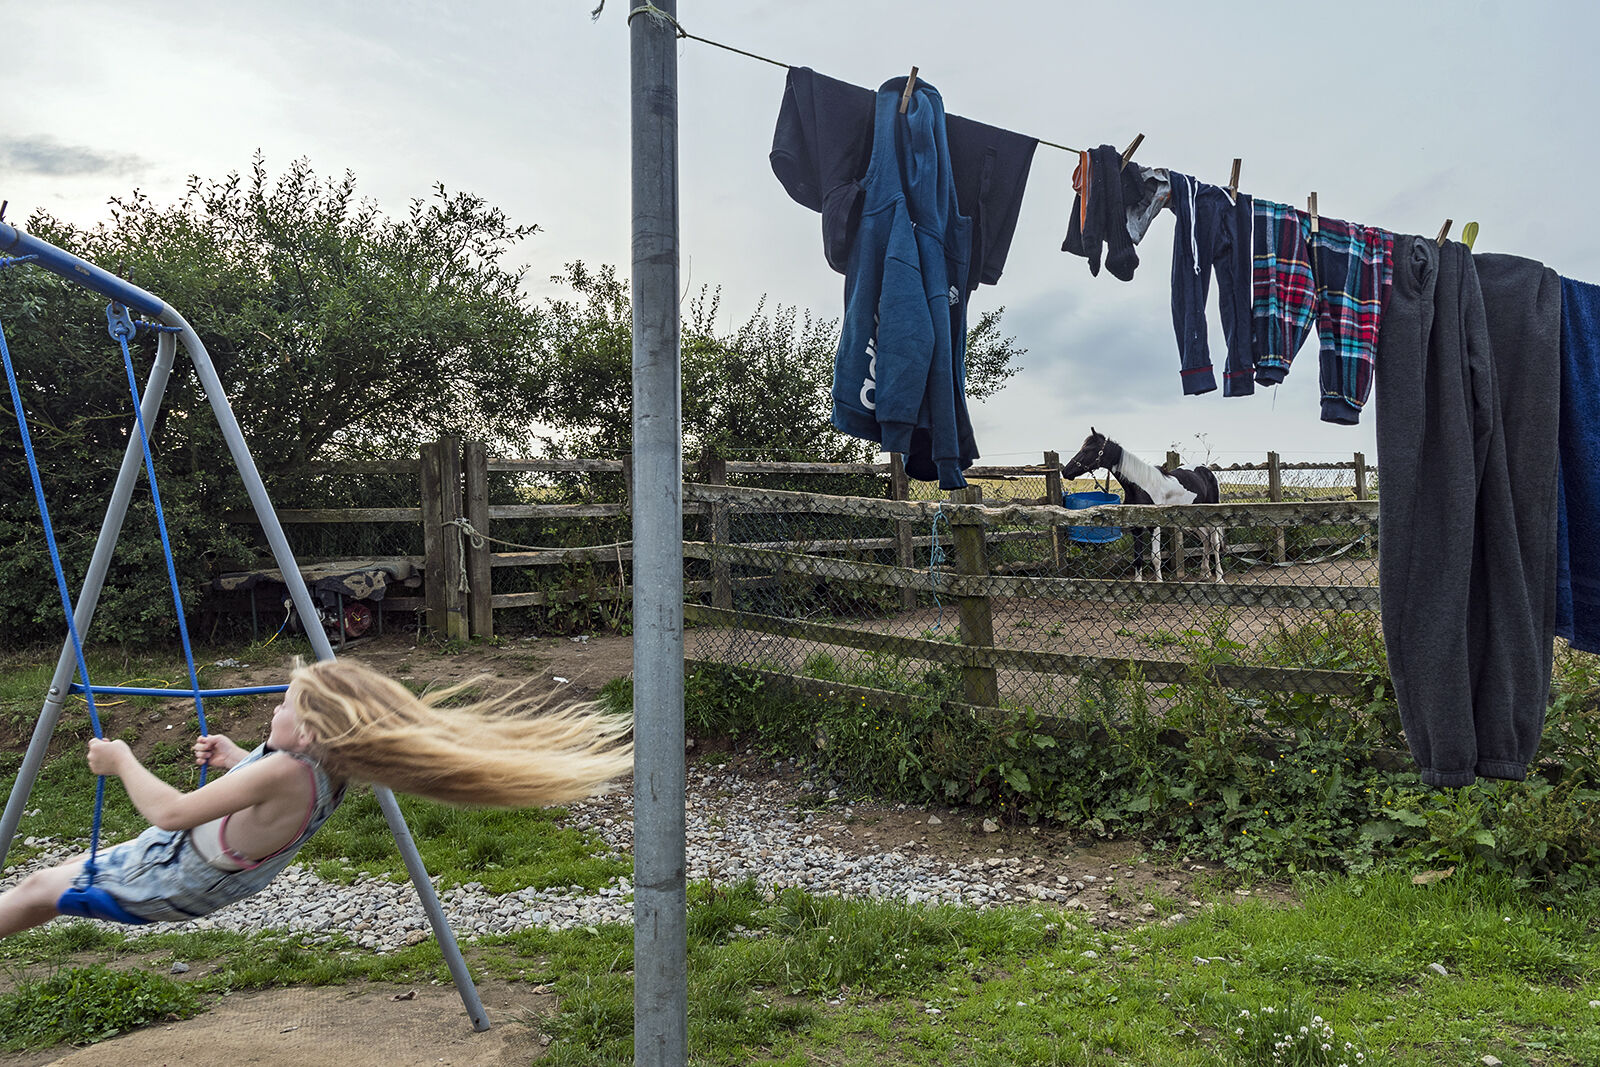 Chantelle on the swing, Tipperary, Ireland 2020